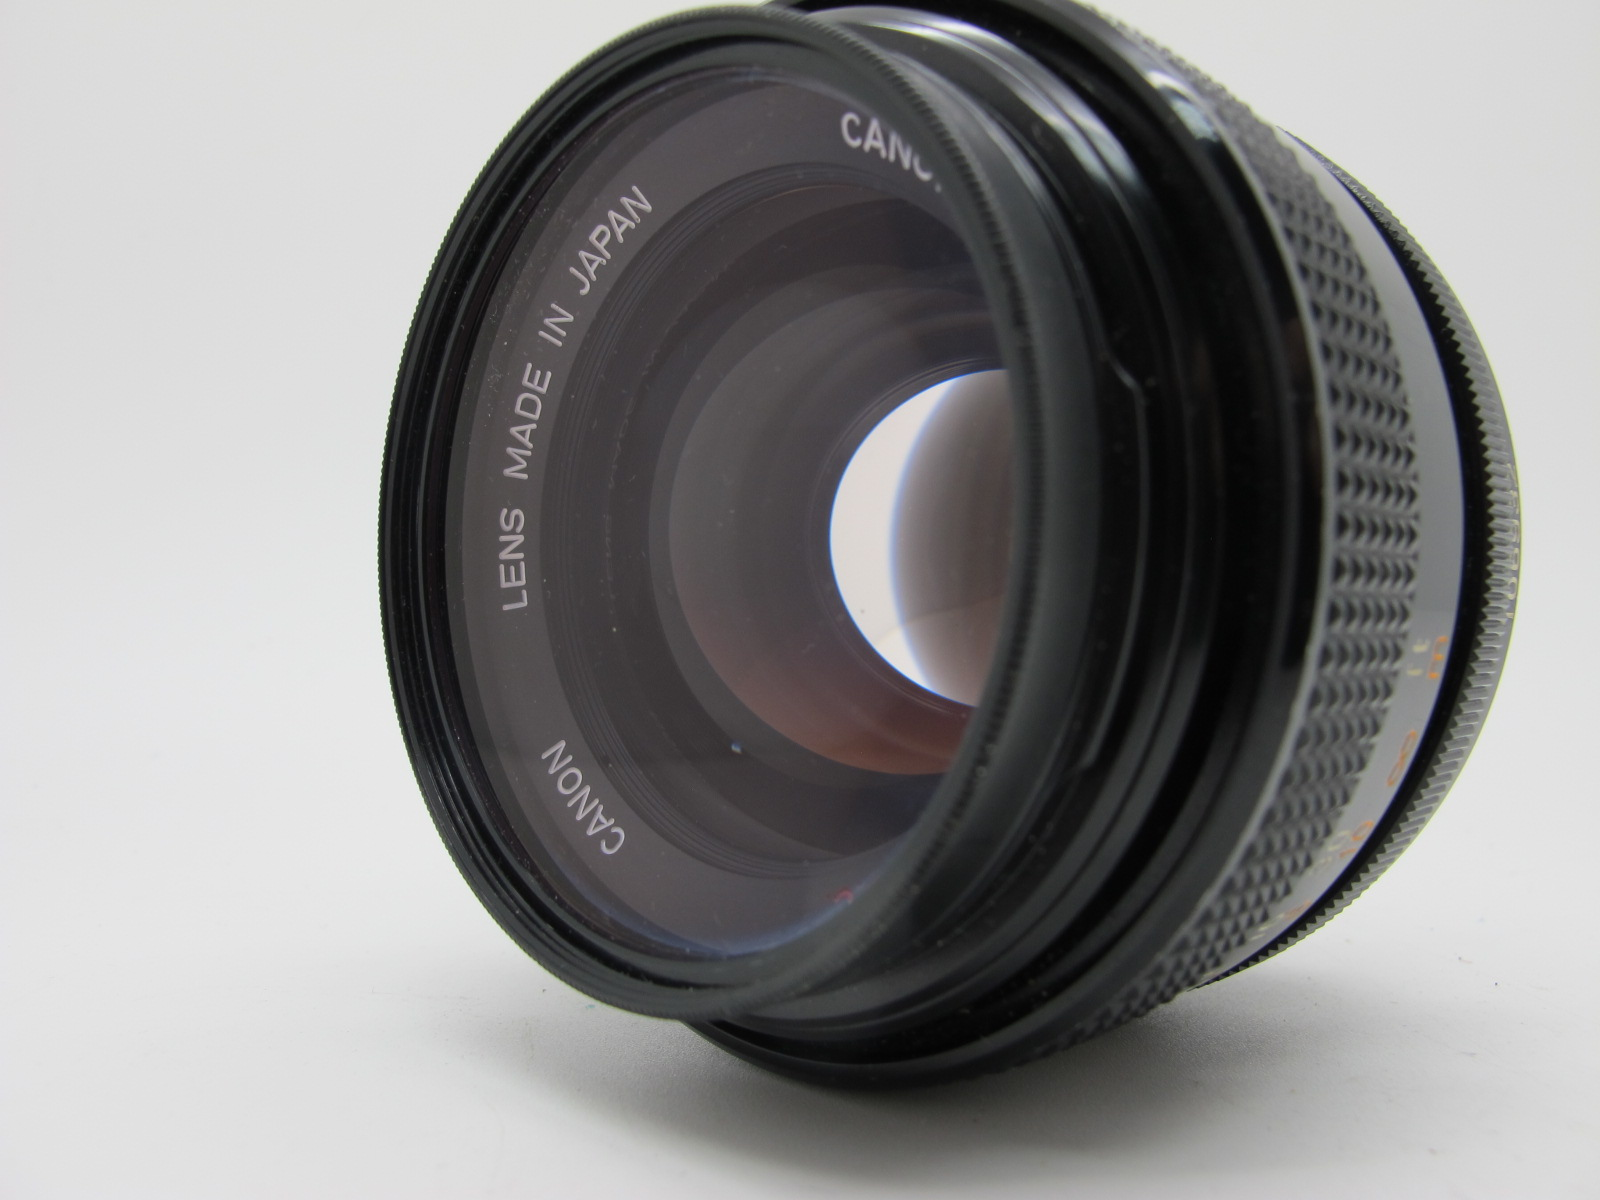 Canon Lens, FD 55mm 1:12 S.S.C. lens, in canvas case. - Image 3 of 6